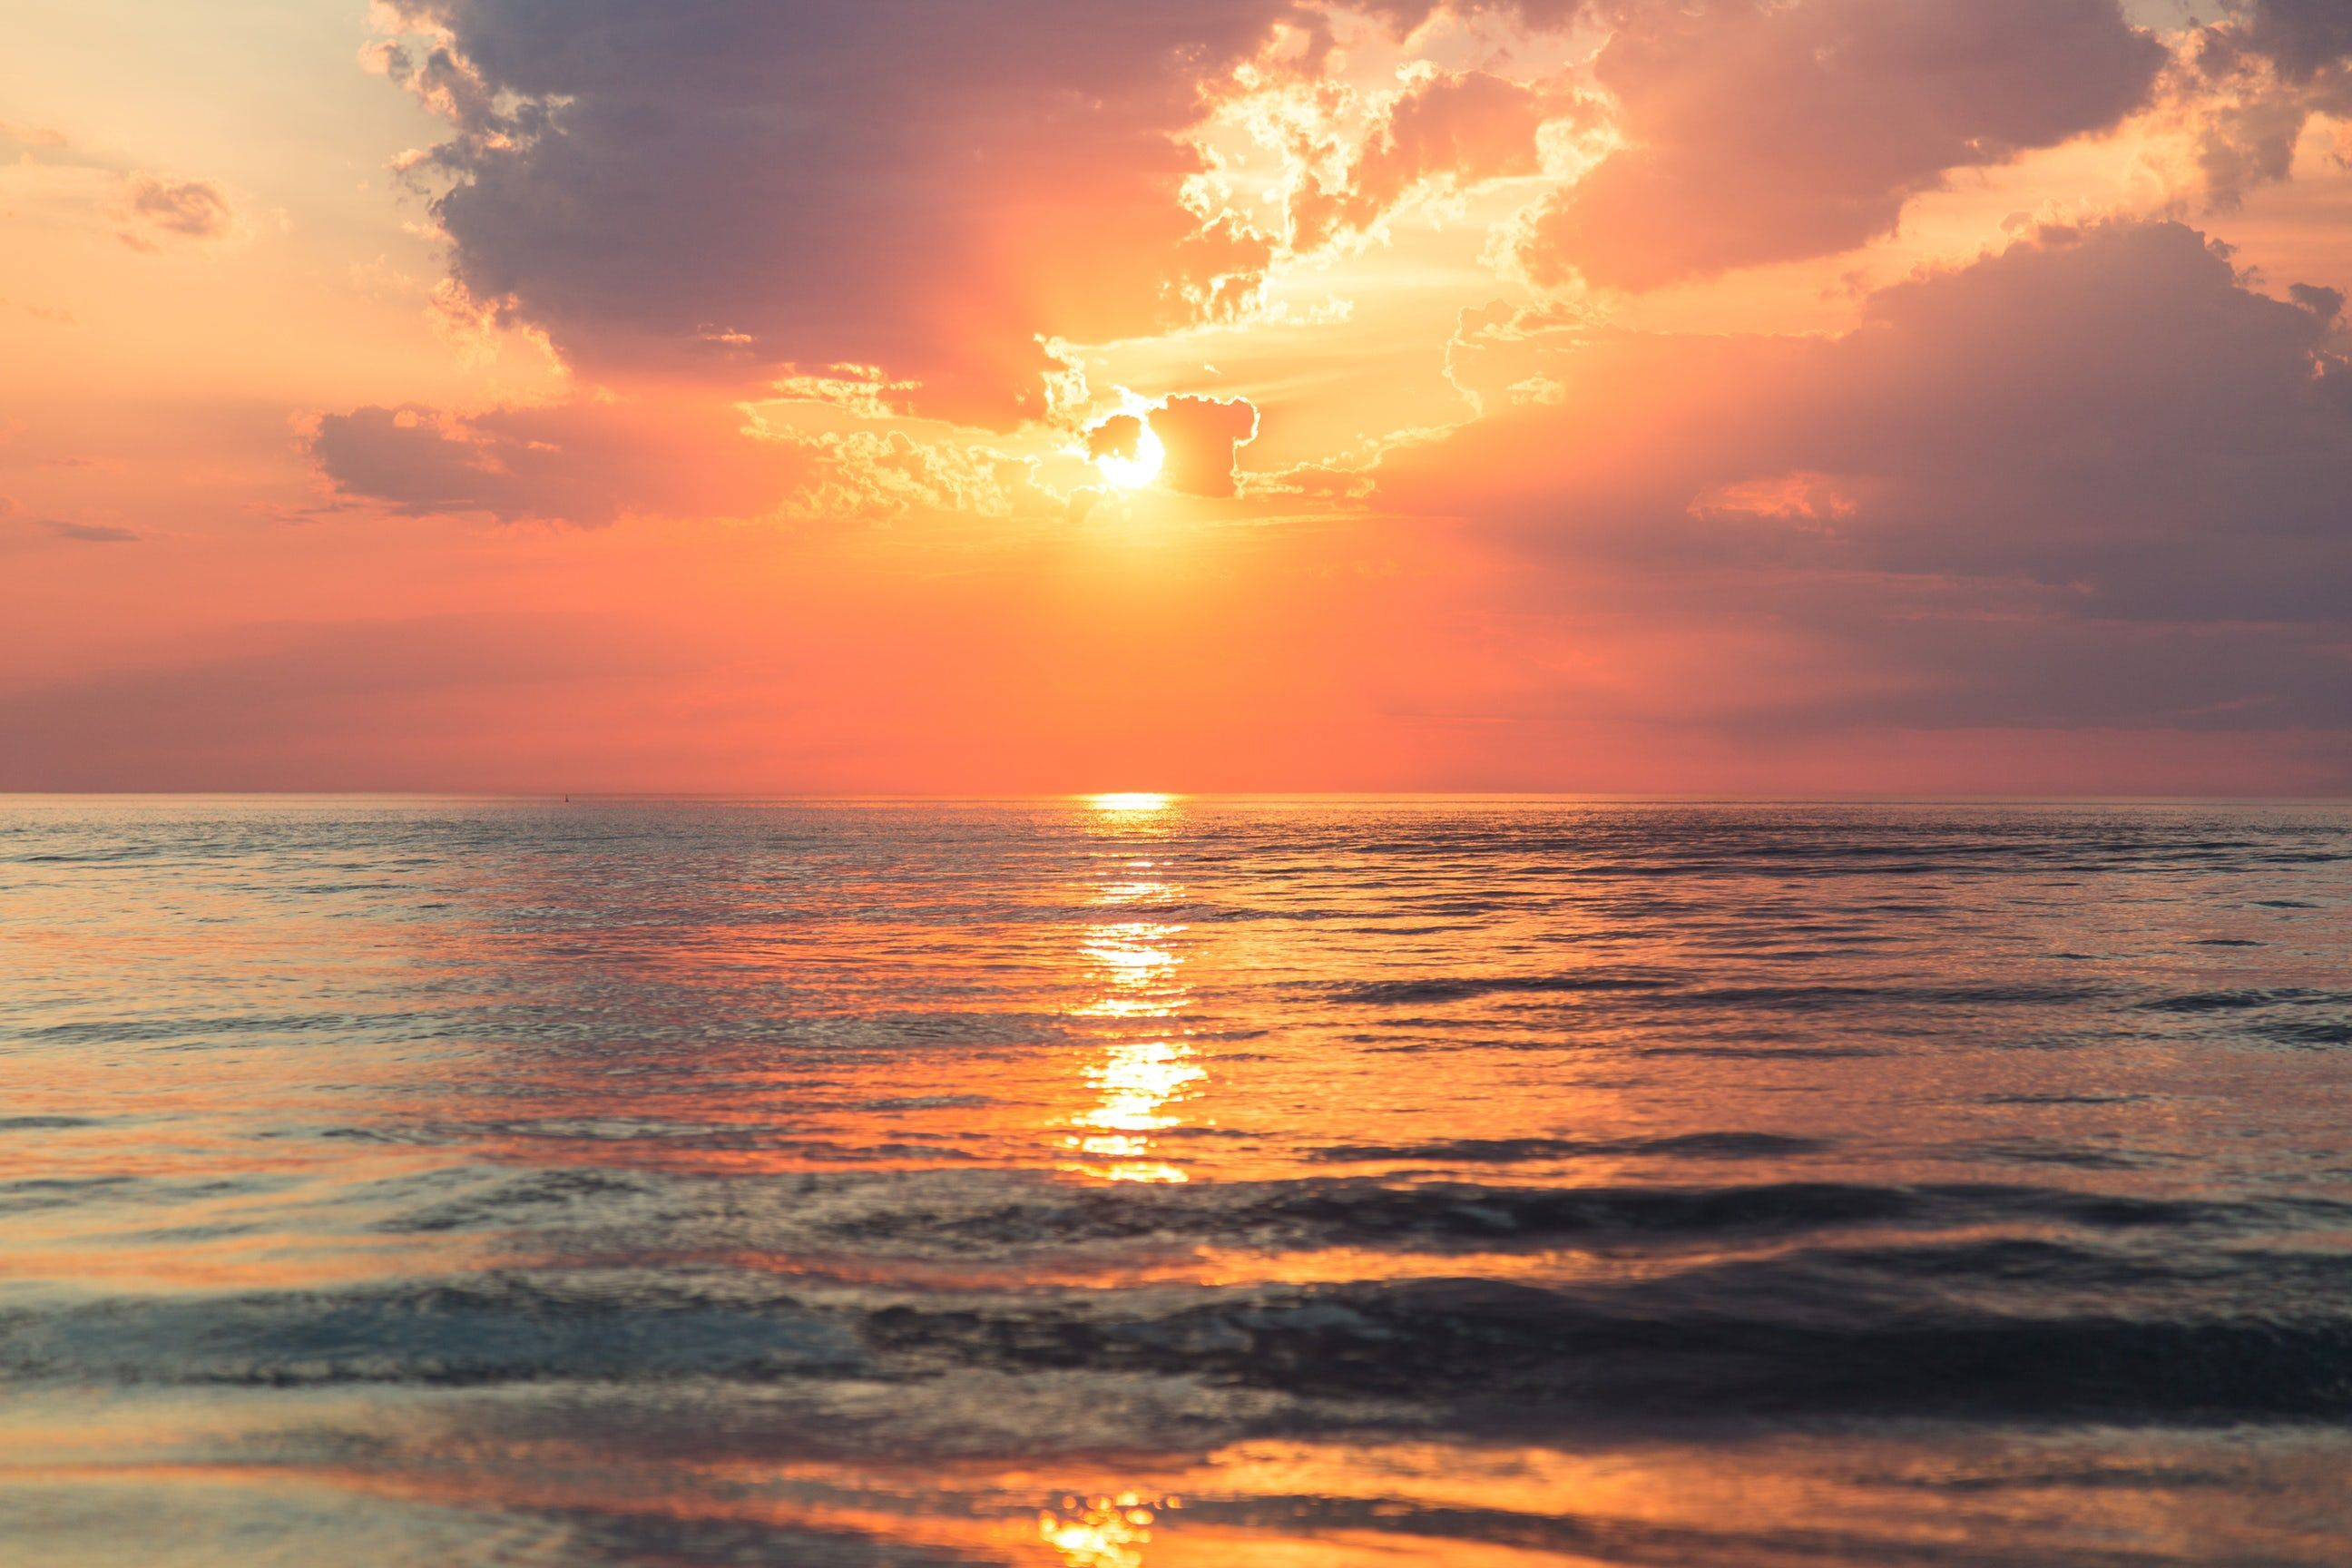 Sea Under White Clouds At Golden Hour Sunset Images